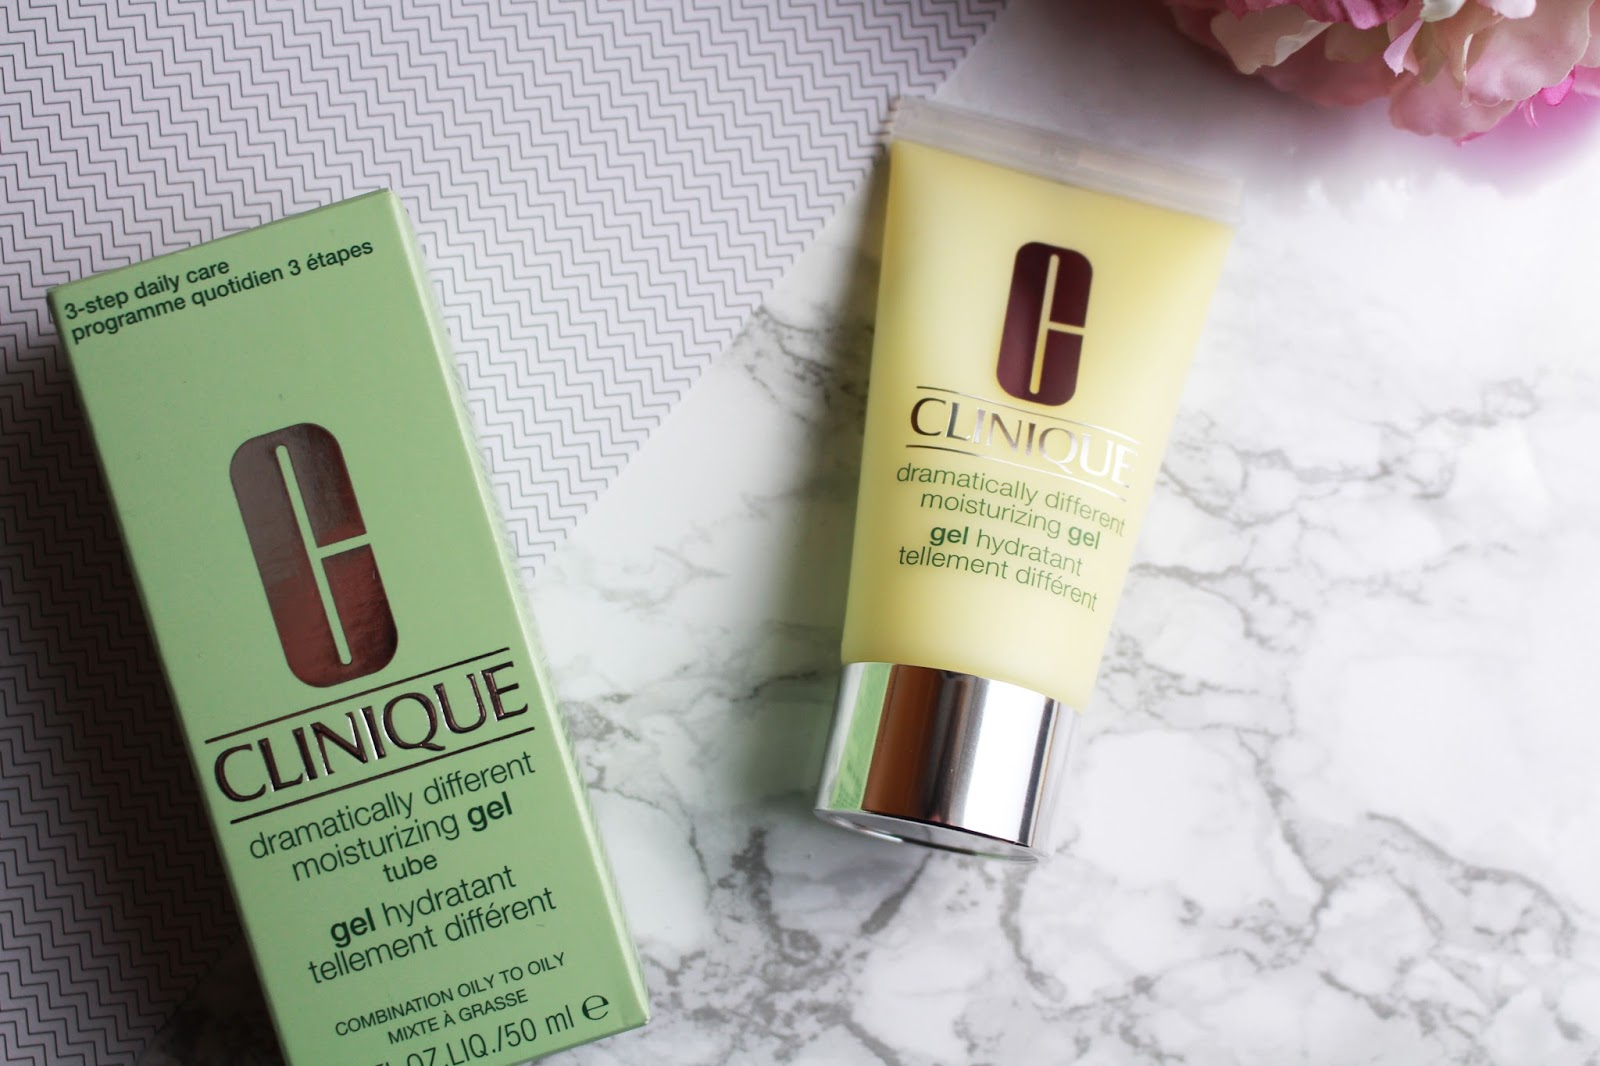 Clinique 3 Step Daily Care, Clinique DDML, Clinique Dramatic moisturiser Review, Best moisturiser